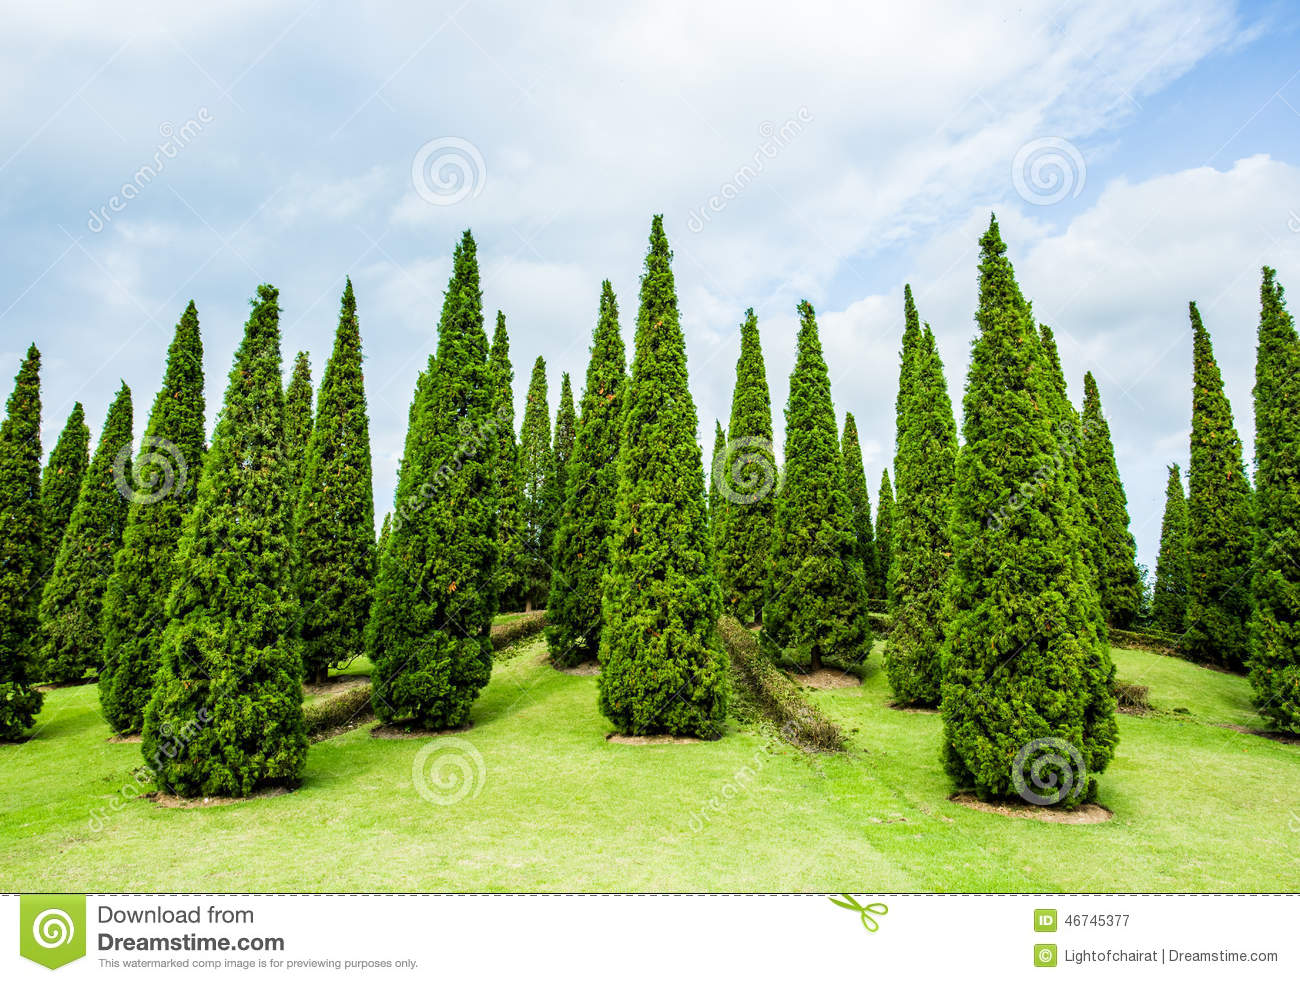 Pine Trees In The Royal Flora Garden Chiangmai Thailand Royalty Free Stock  Photography